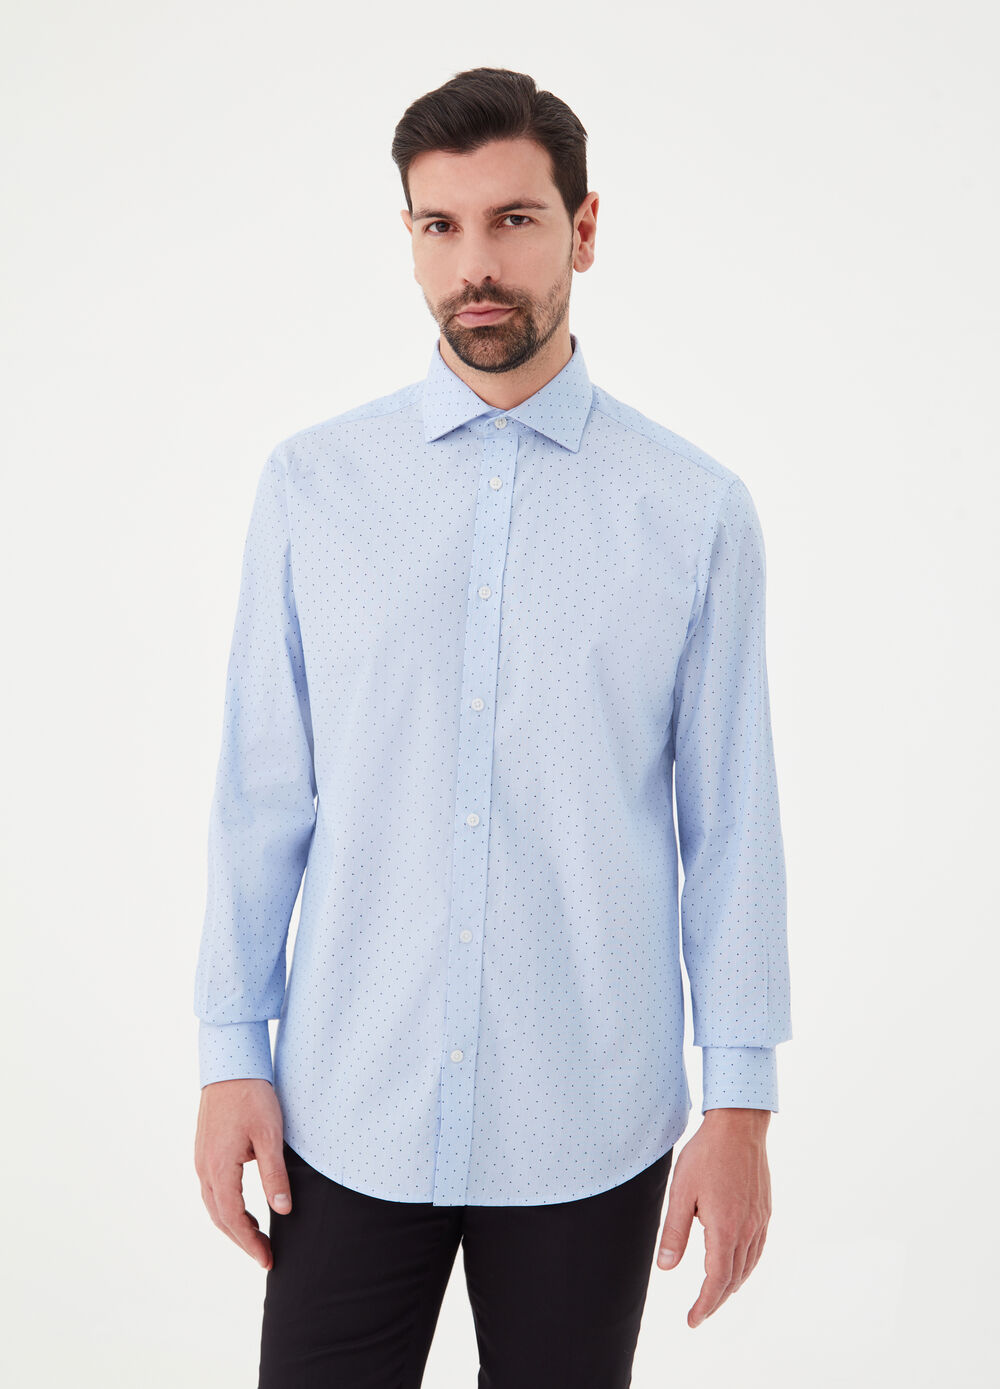 Micro-patterned twill shirt with print